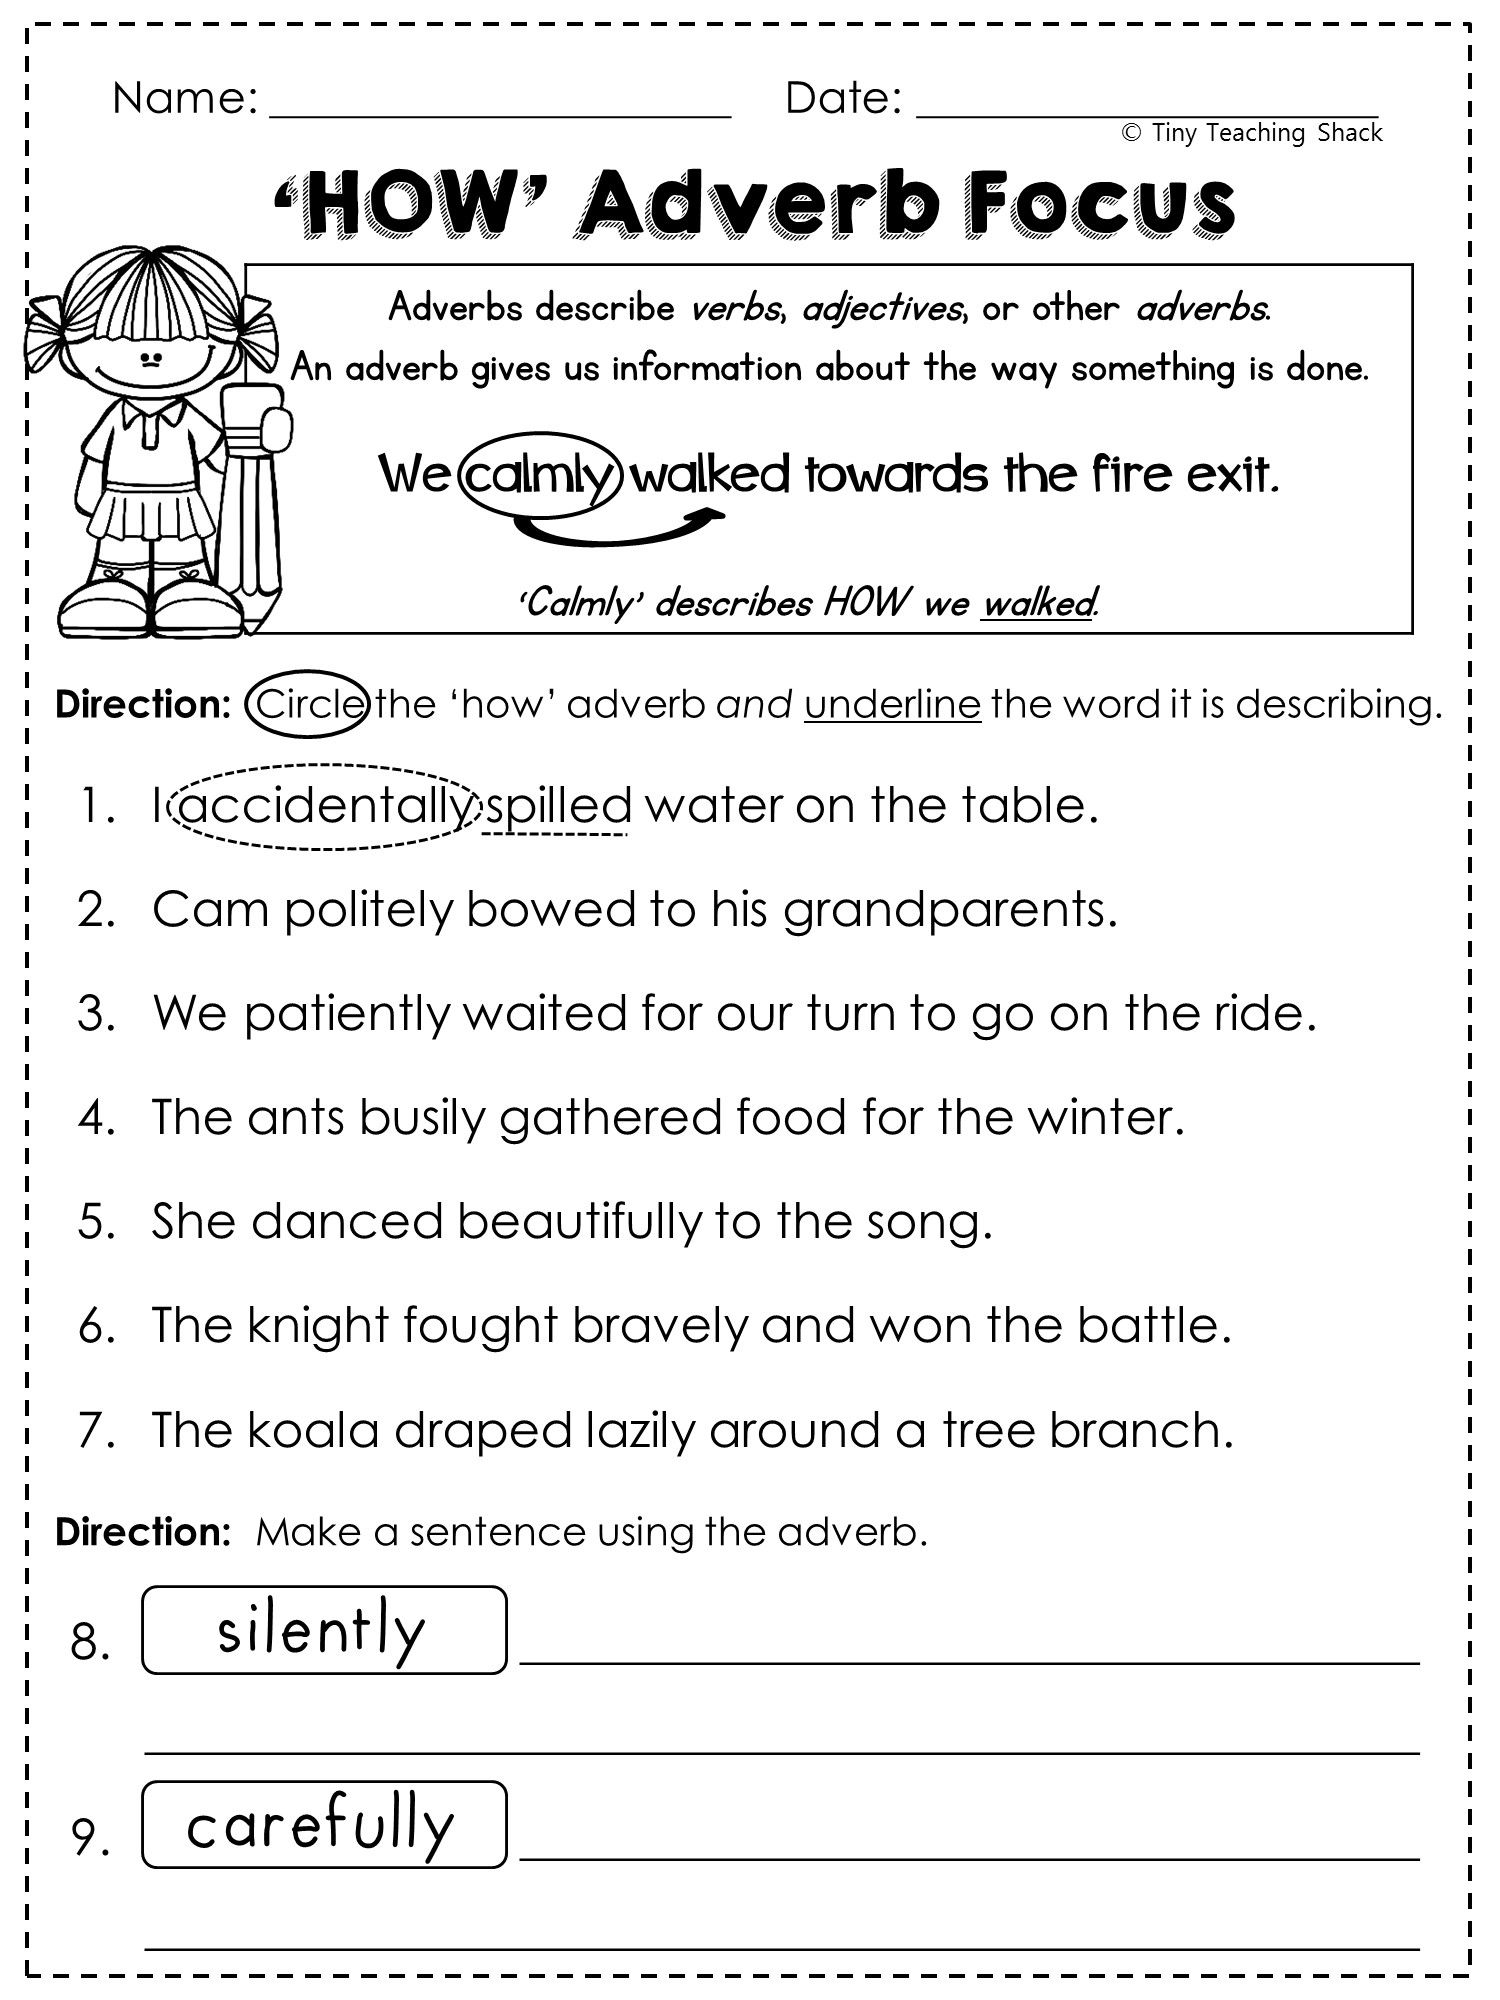 free adverb worksheet in 2020 2nd grade worksheets